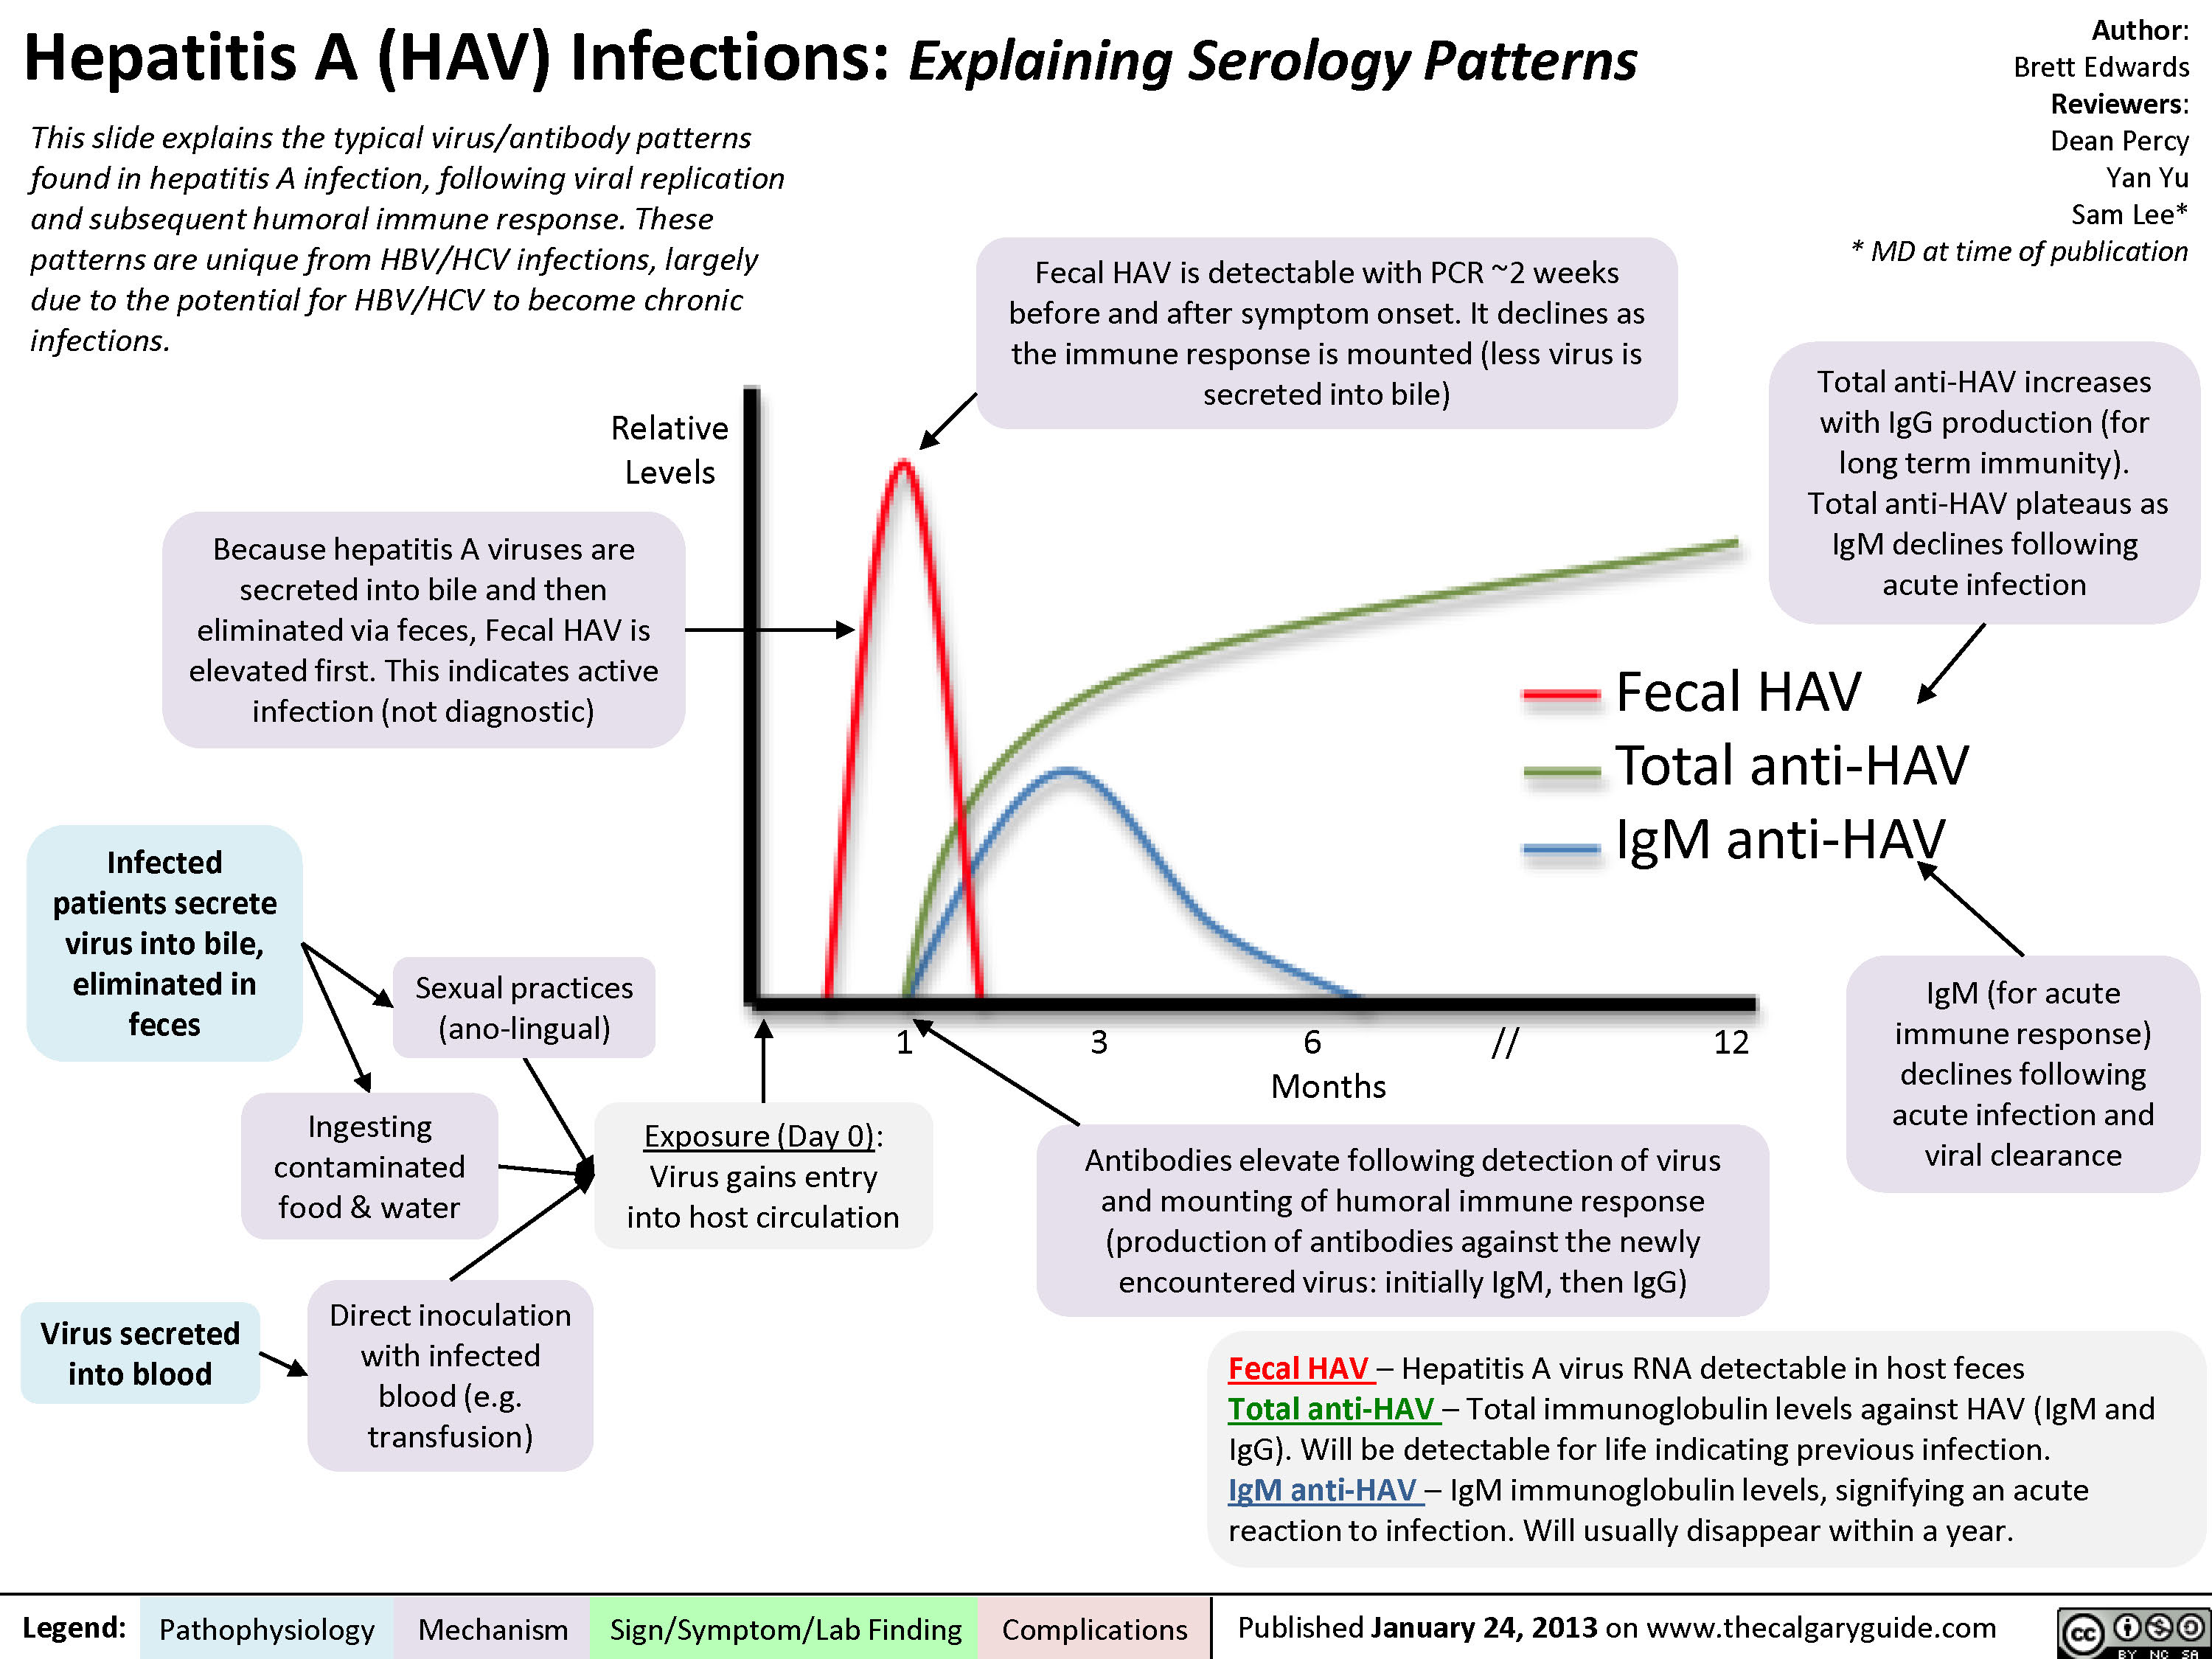 Hepatitis A (HAV) Infections